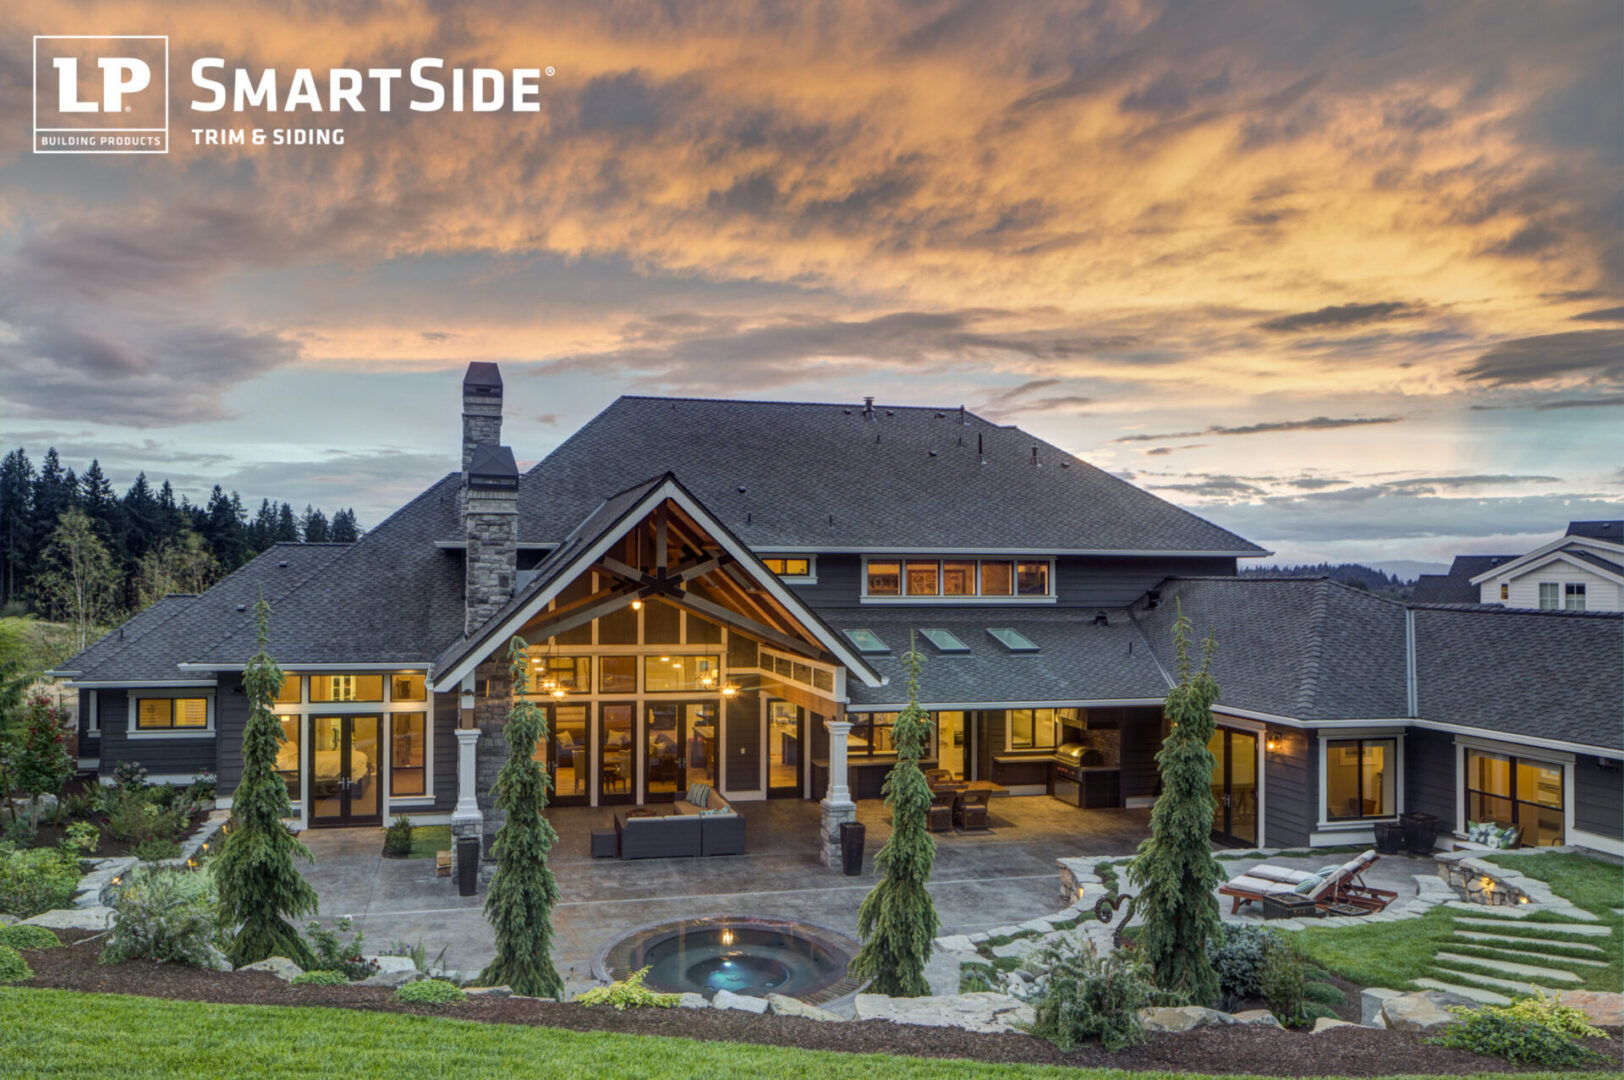 LP_Assets_HighRes High res - two-story large grey house at sunset - DOWNLOAD OR SHARE